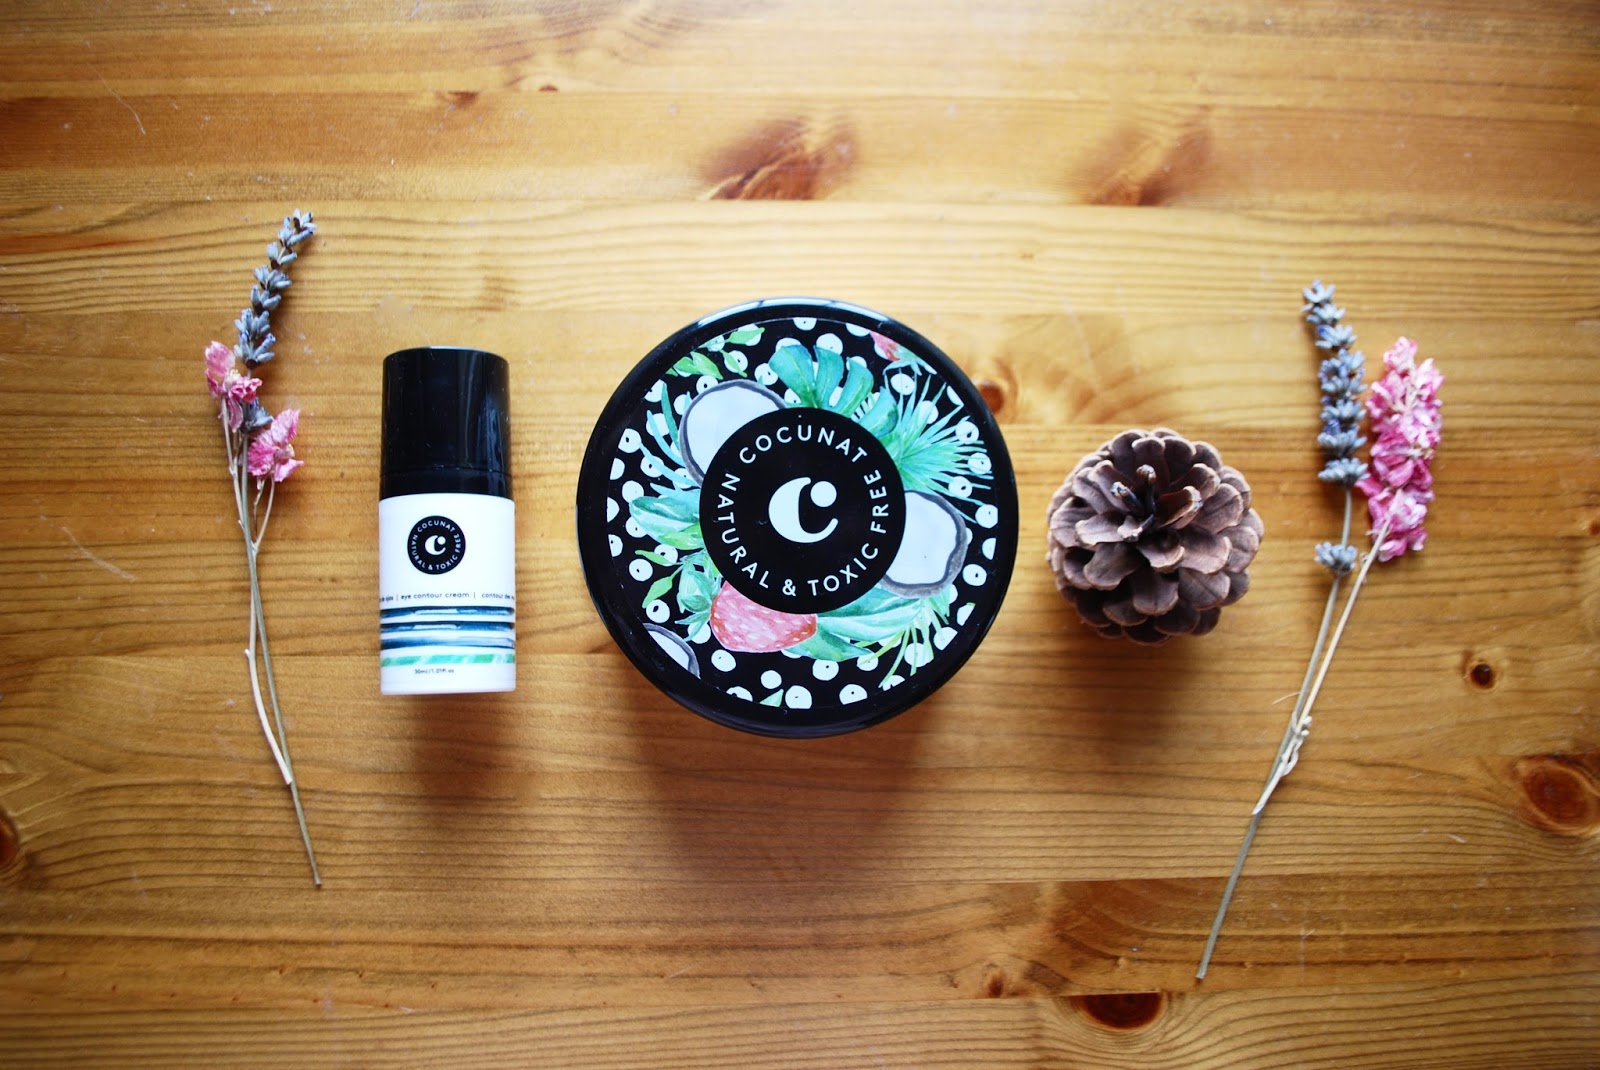 cocunat review eye contour cream and body mousse flatly